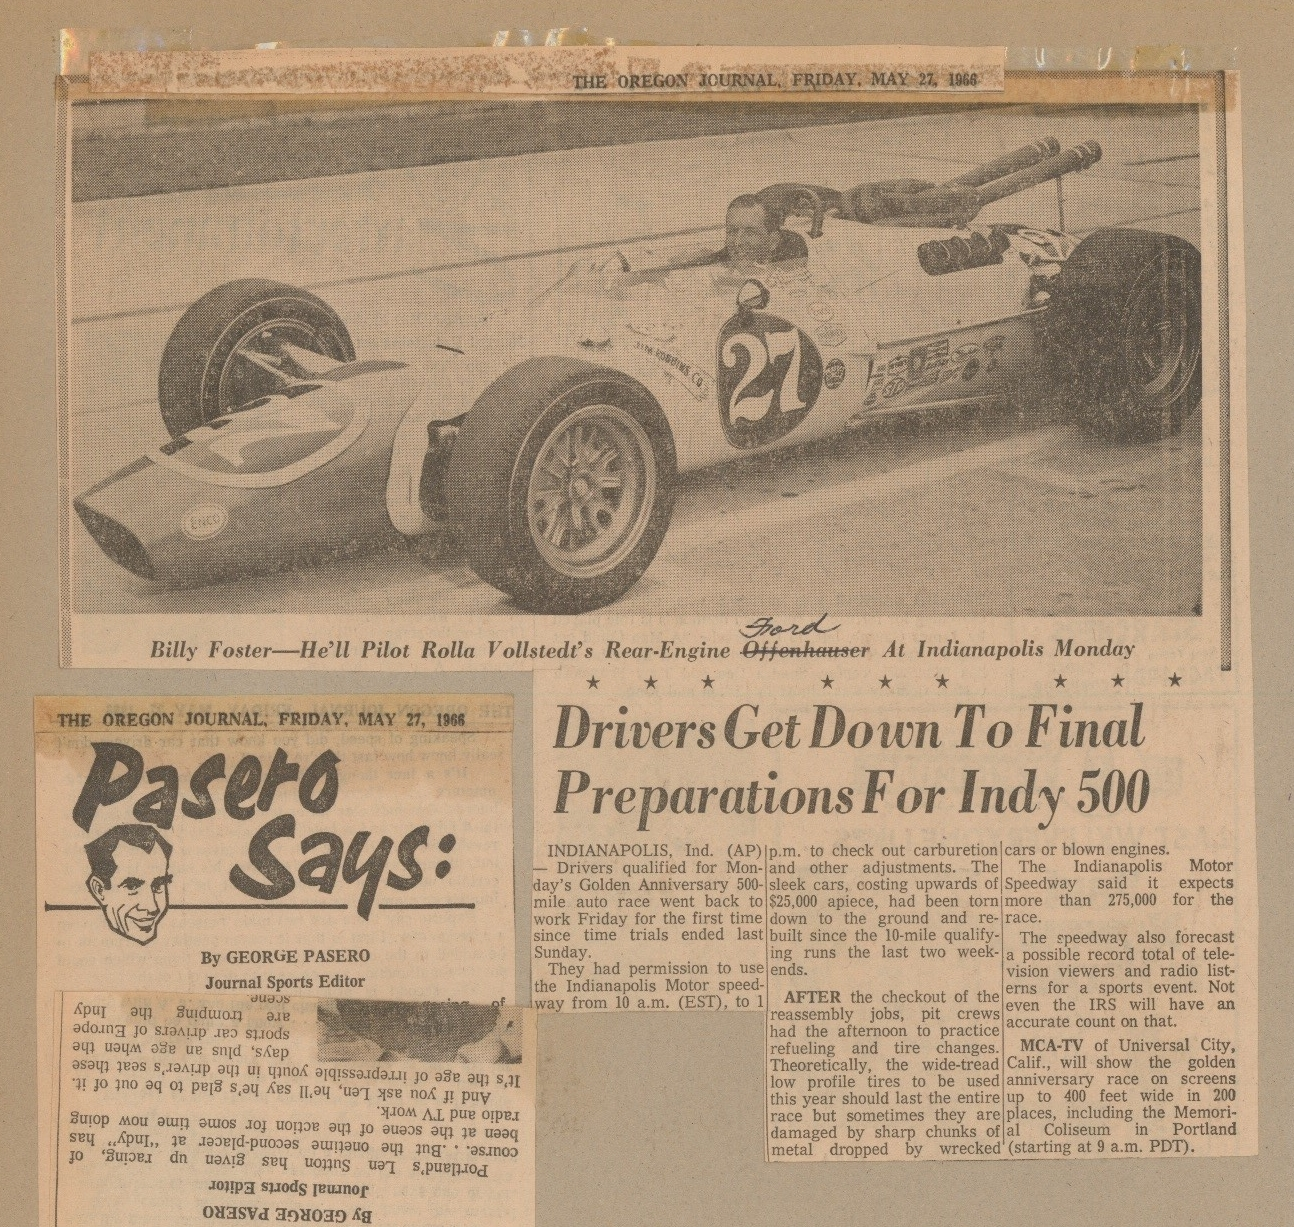 Billy Foster drove Rolla Vollstedt's No. 27 during the 1964 Indy 500. Foster lost his life in 1967 when his Dodge Charger crashed during practice for the USAC Motor Trend 500 at Riverside, California